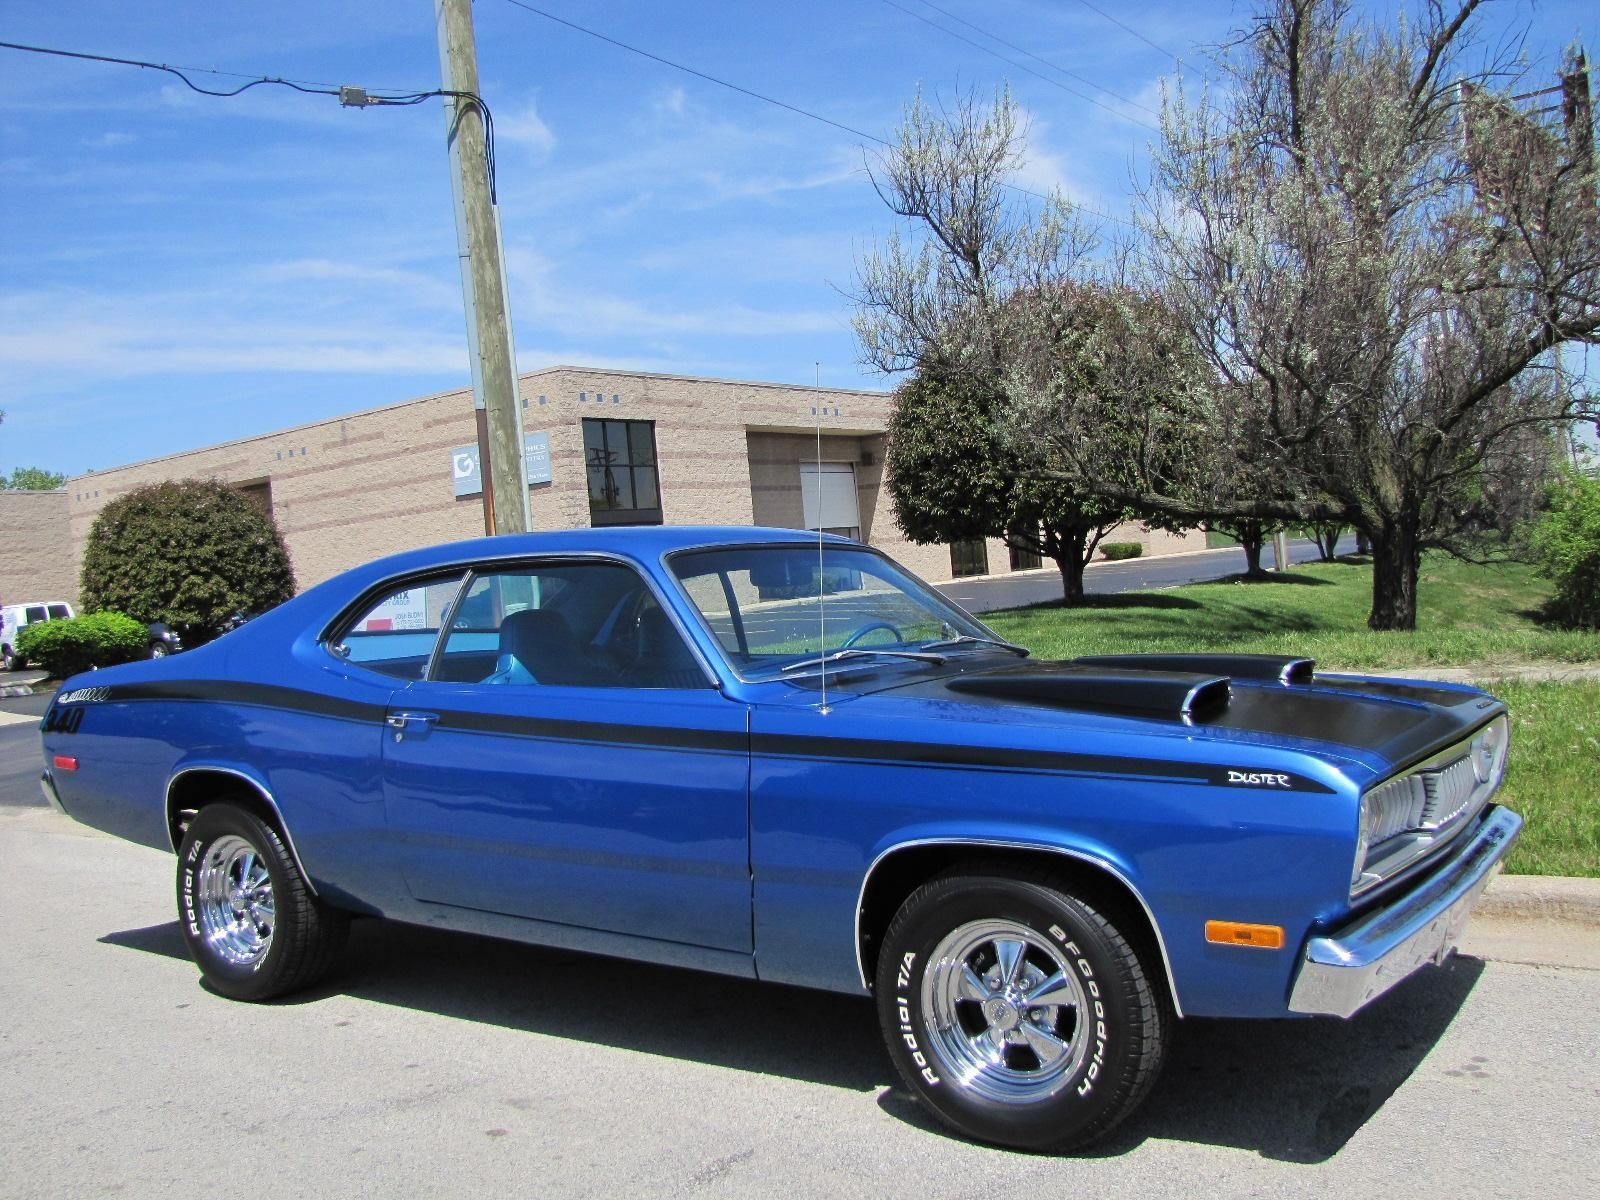 1972 plymouth duster 340 maintenance restoration of old vintage vehicles the material for